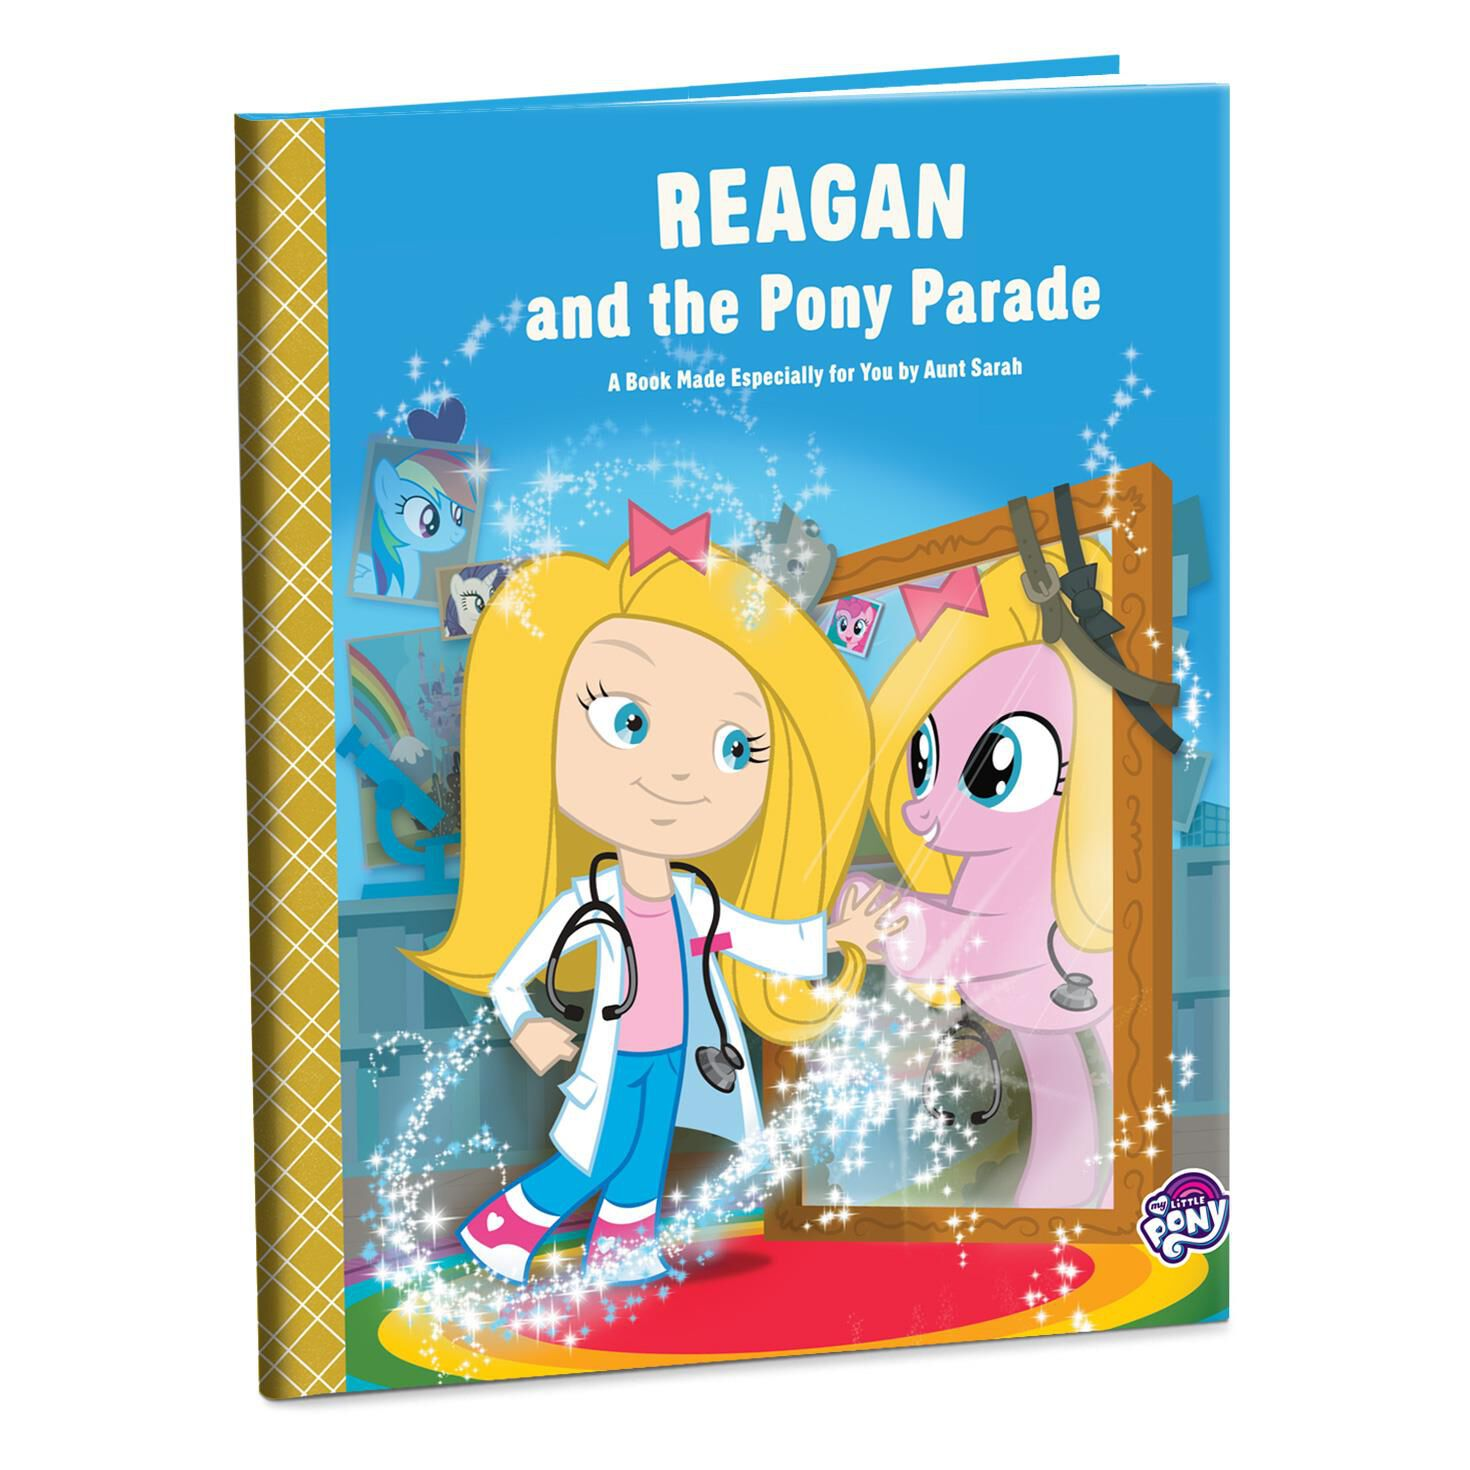 My Little Pony™ Personalized Book - Personalized Books - Hallmark